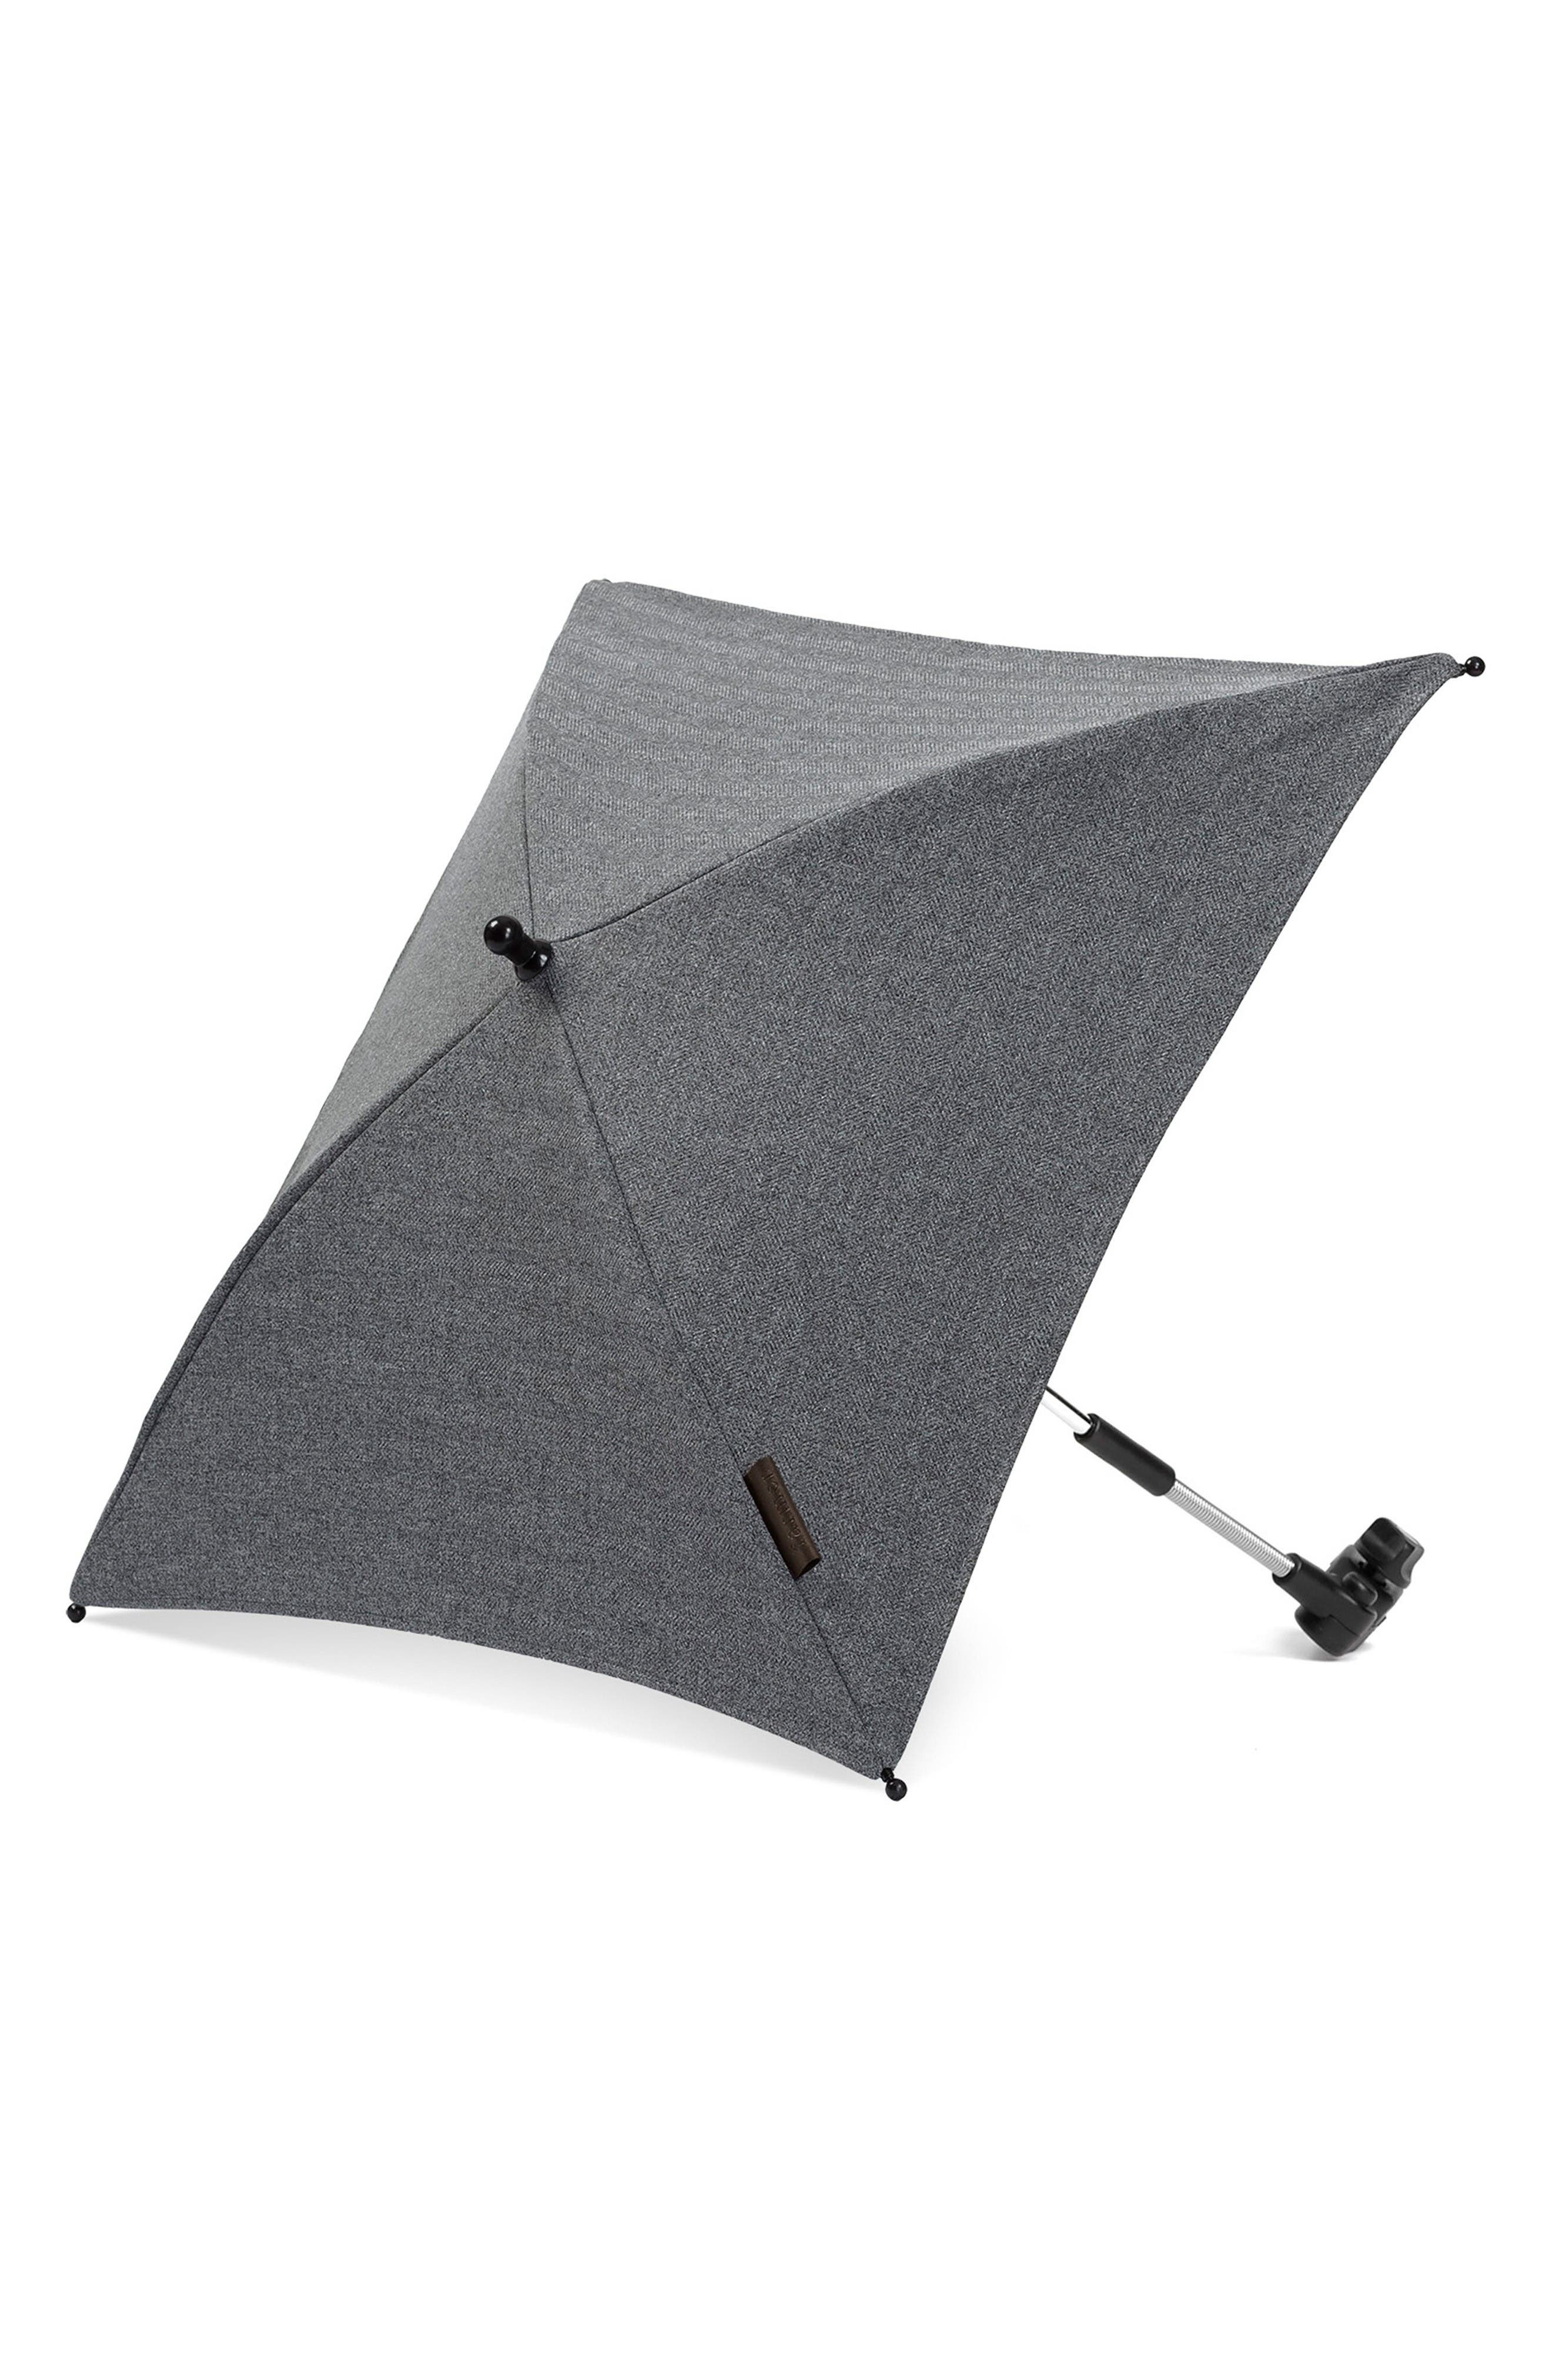 Alternate Image 1 Selected - Mutsy Evo - Farmer Stroller Umbrella